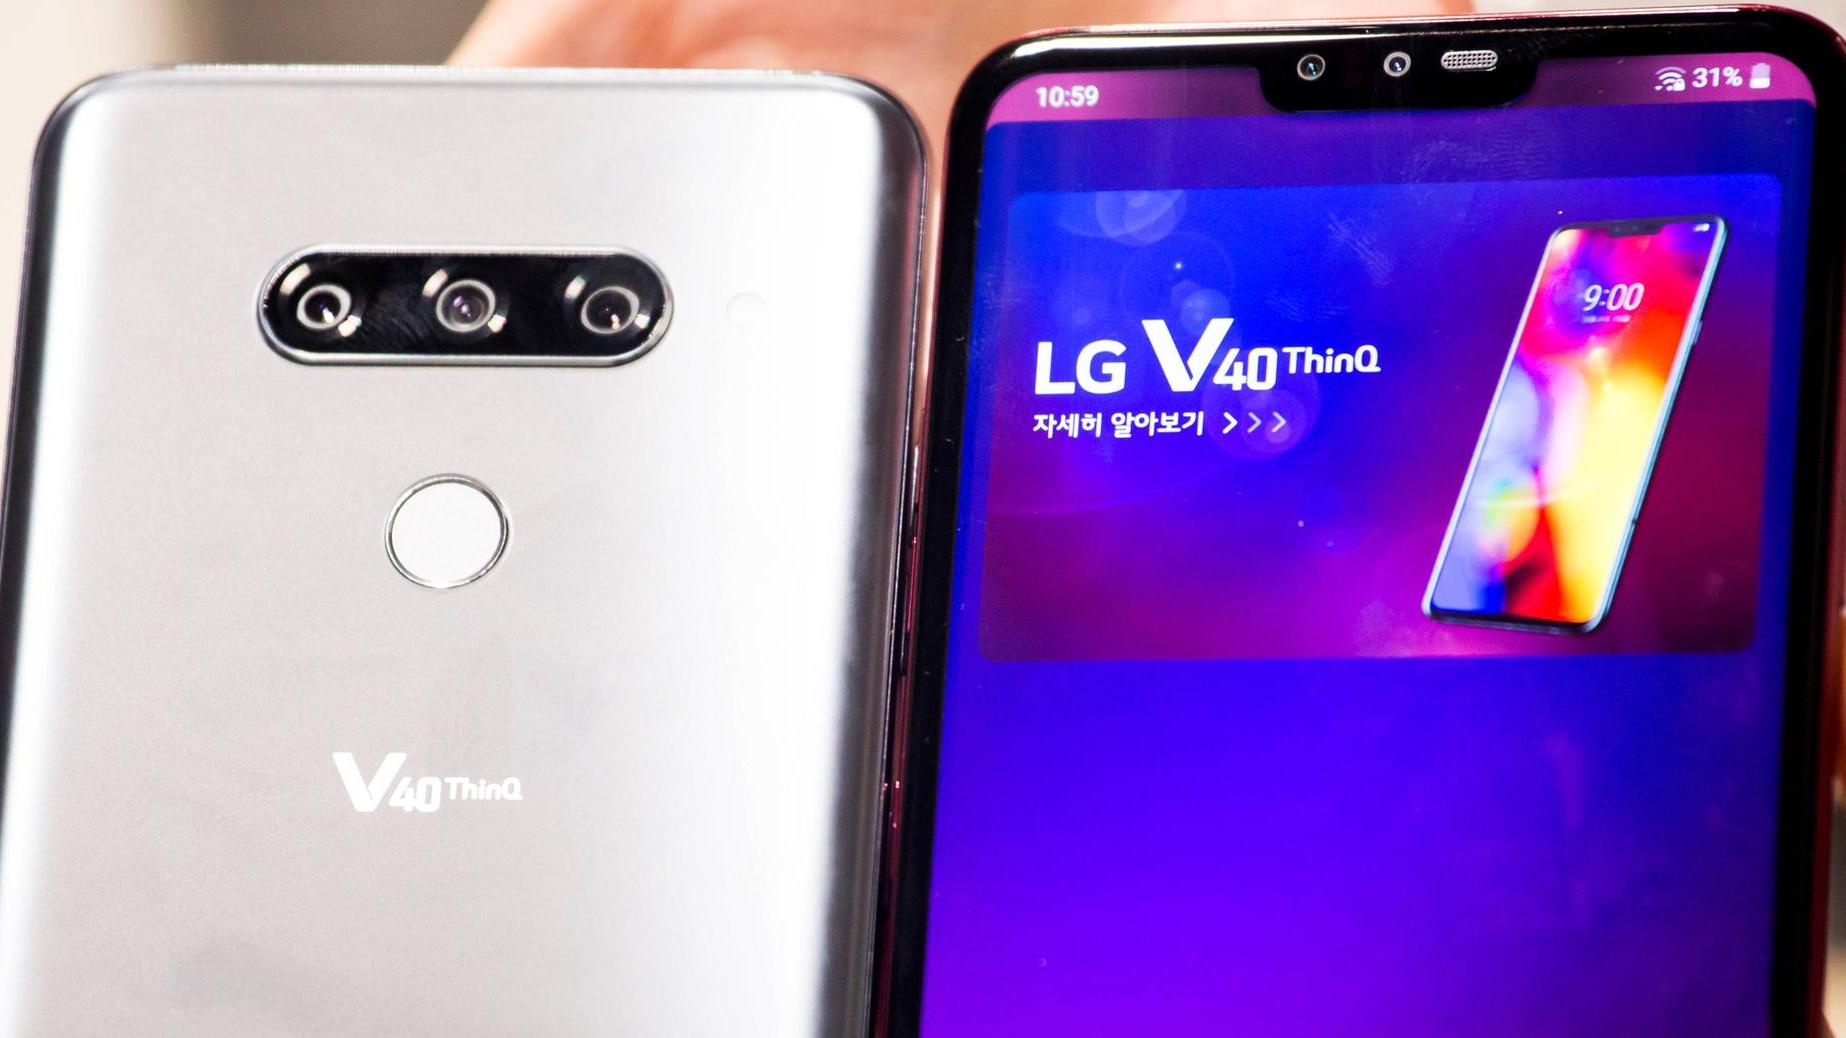 LG electronics manufacturer has pulled out of the smartphone business